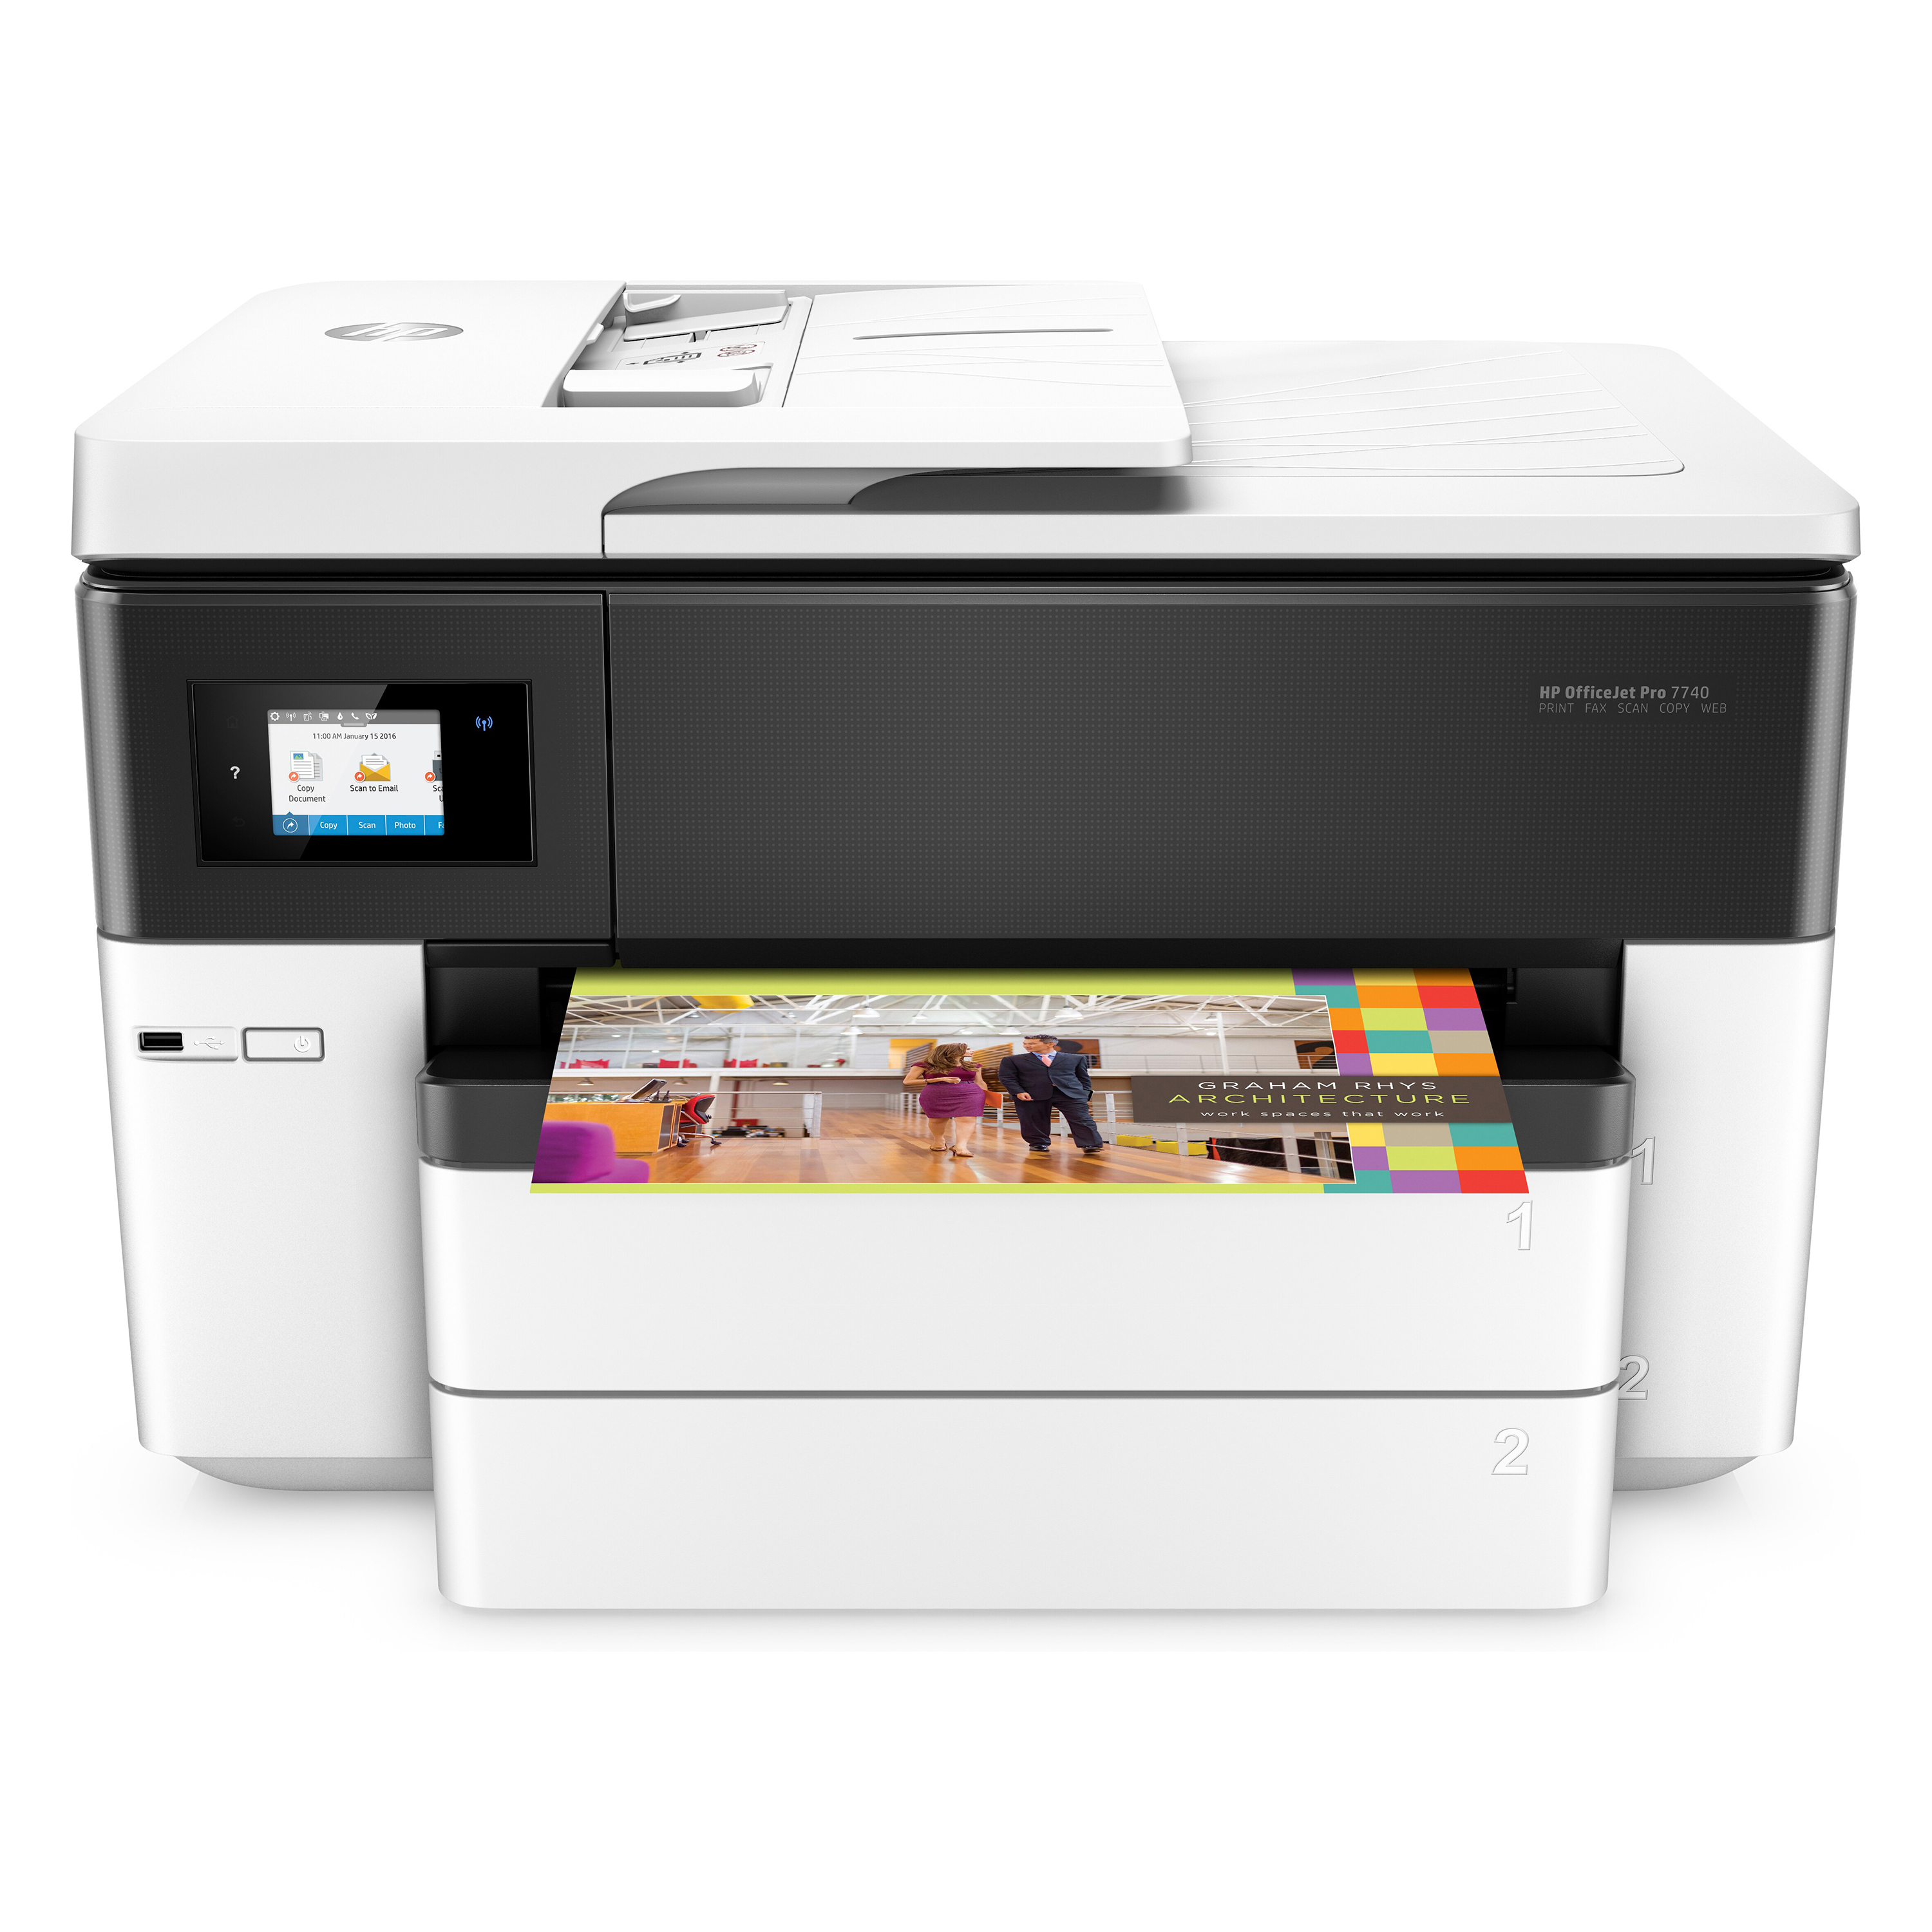 HP OfficeJet Pro 7740 WiFi Multifunction Inkjet A3 Printer Ref G5J38A